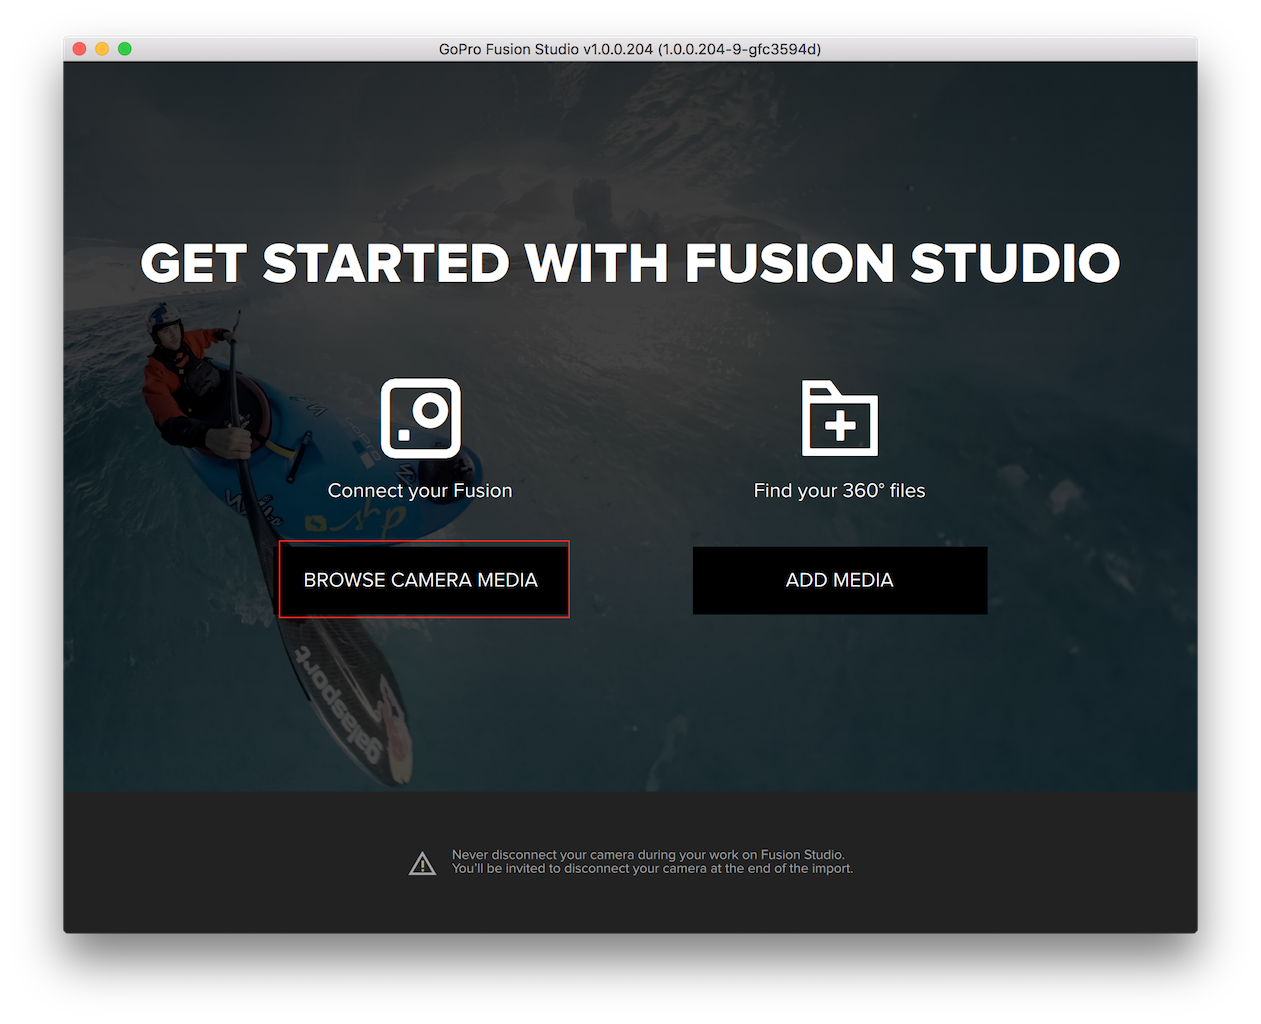 How to Render Videos in the GoPro Fusion Studio App